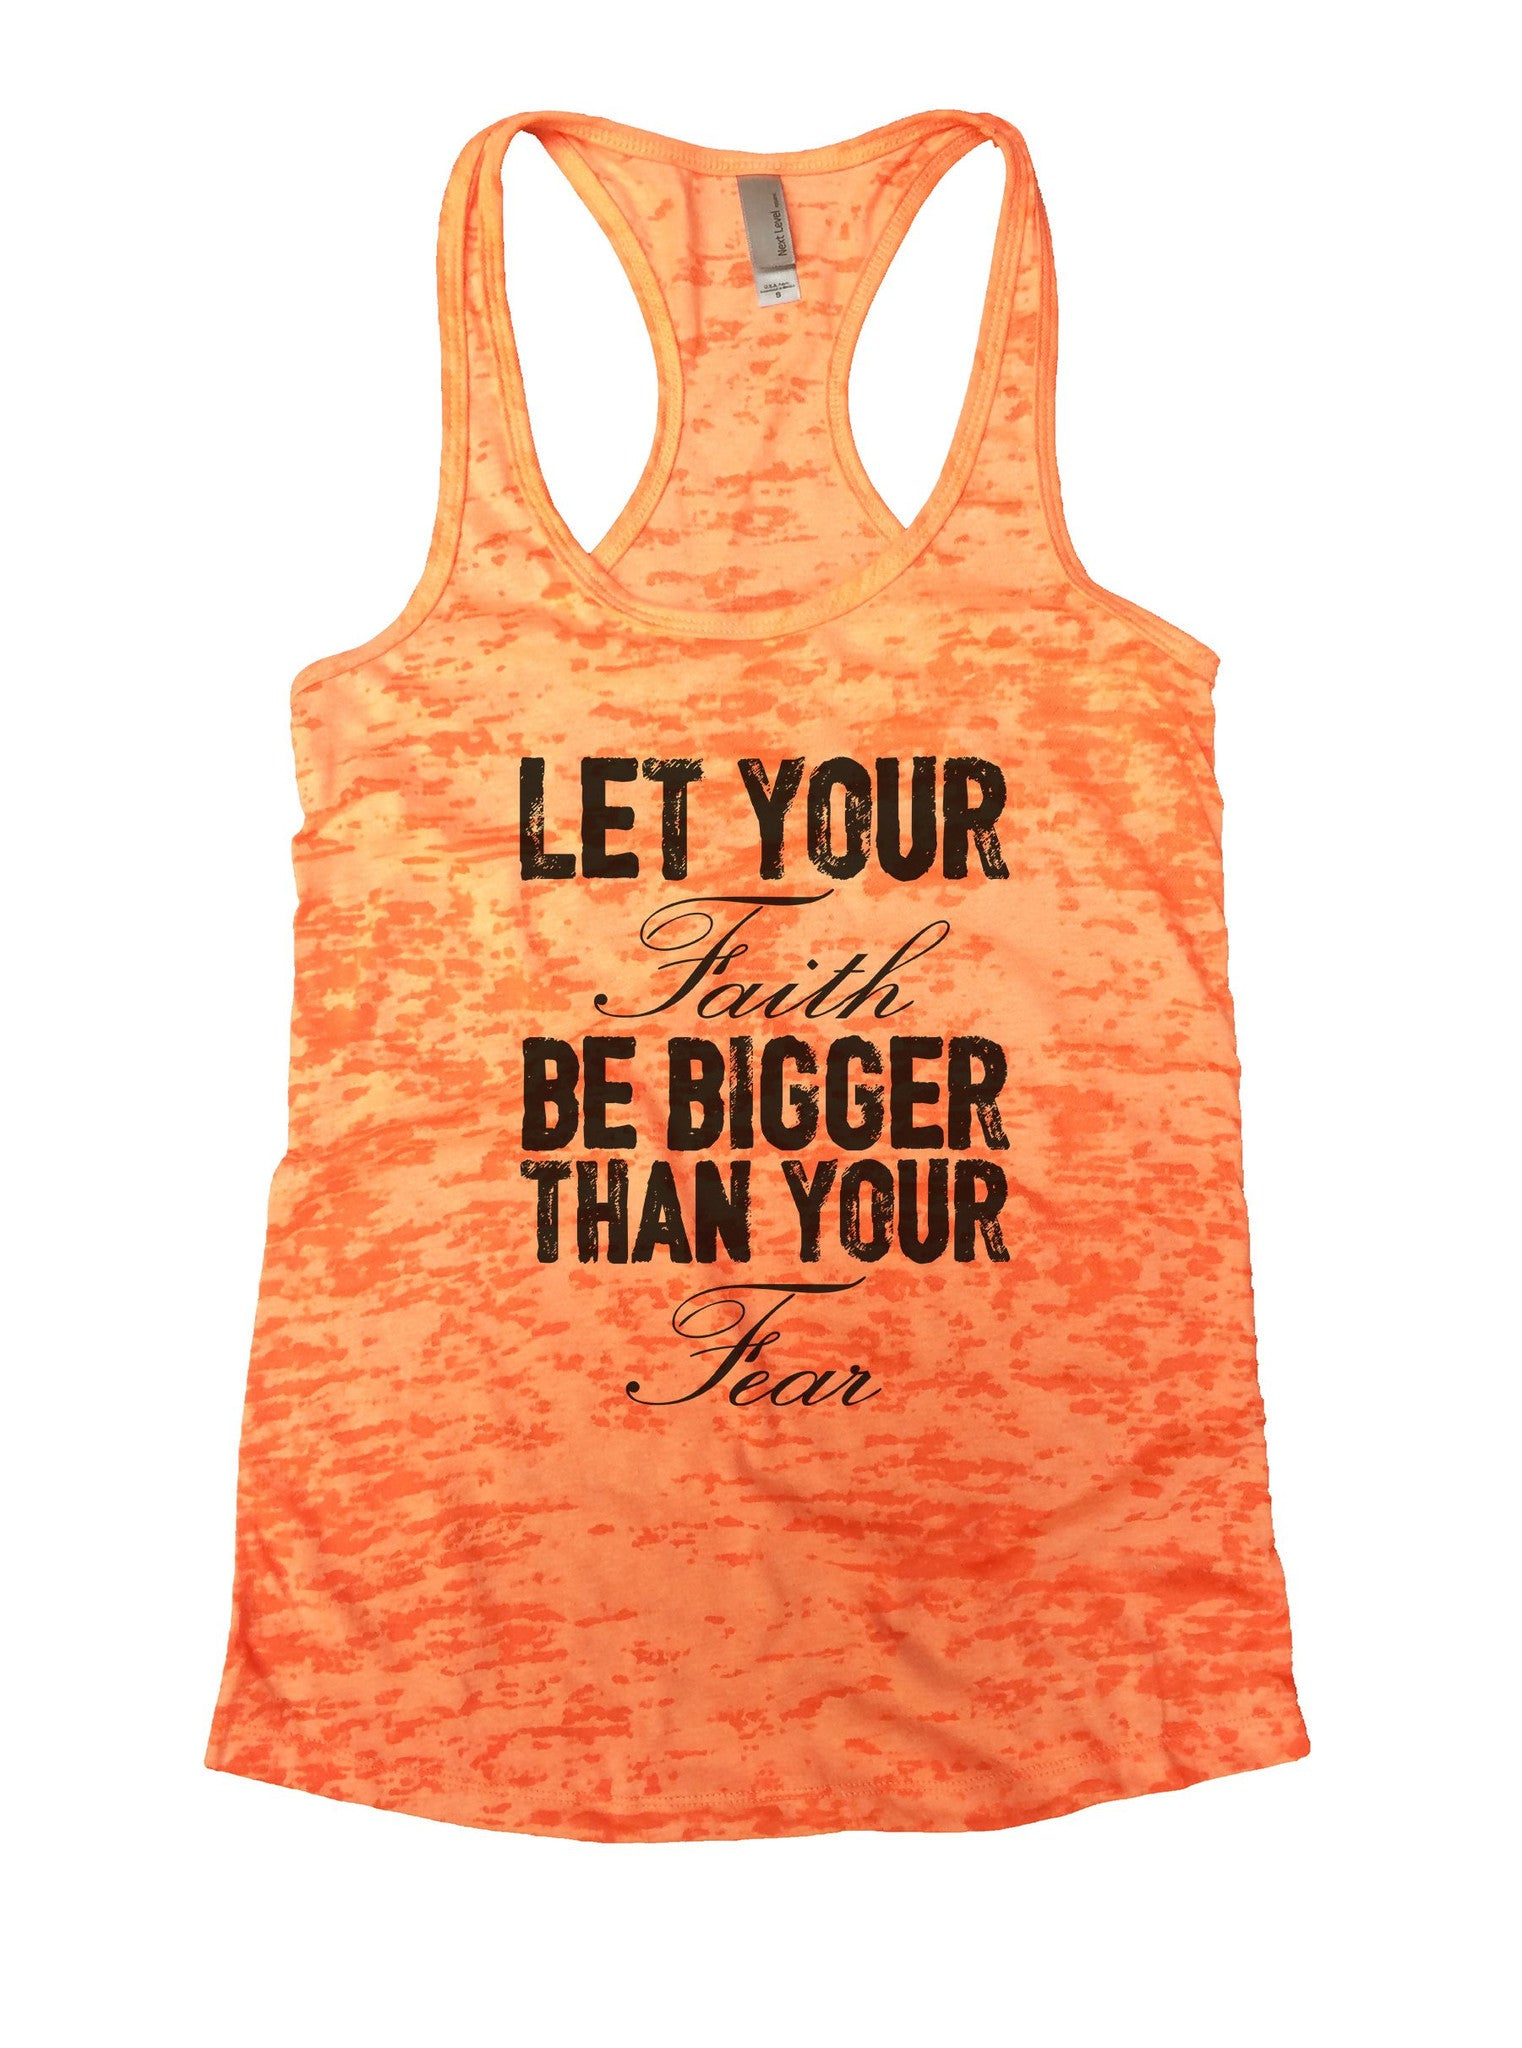 Let Your Faith Be Bigger Than Your Fear Burnout Tank Top By BurnoutTankTops.com - 861 - Funny Shirts Tank Tops Burnouts and Triblends  - 3